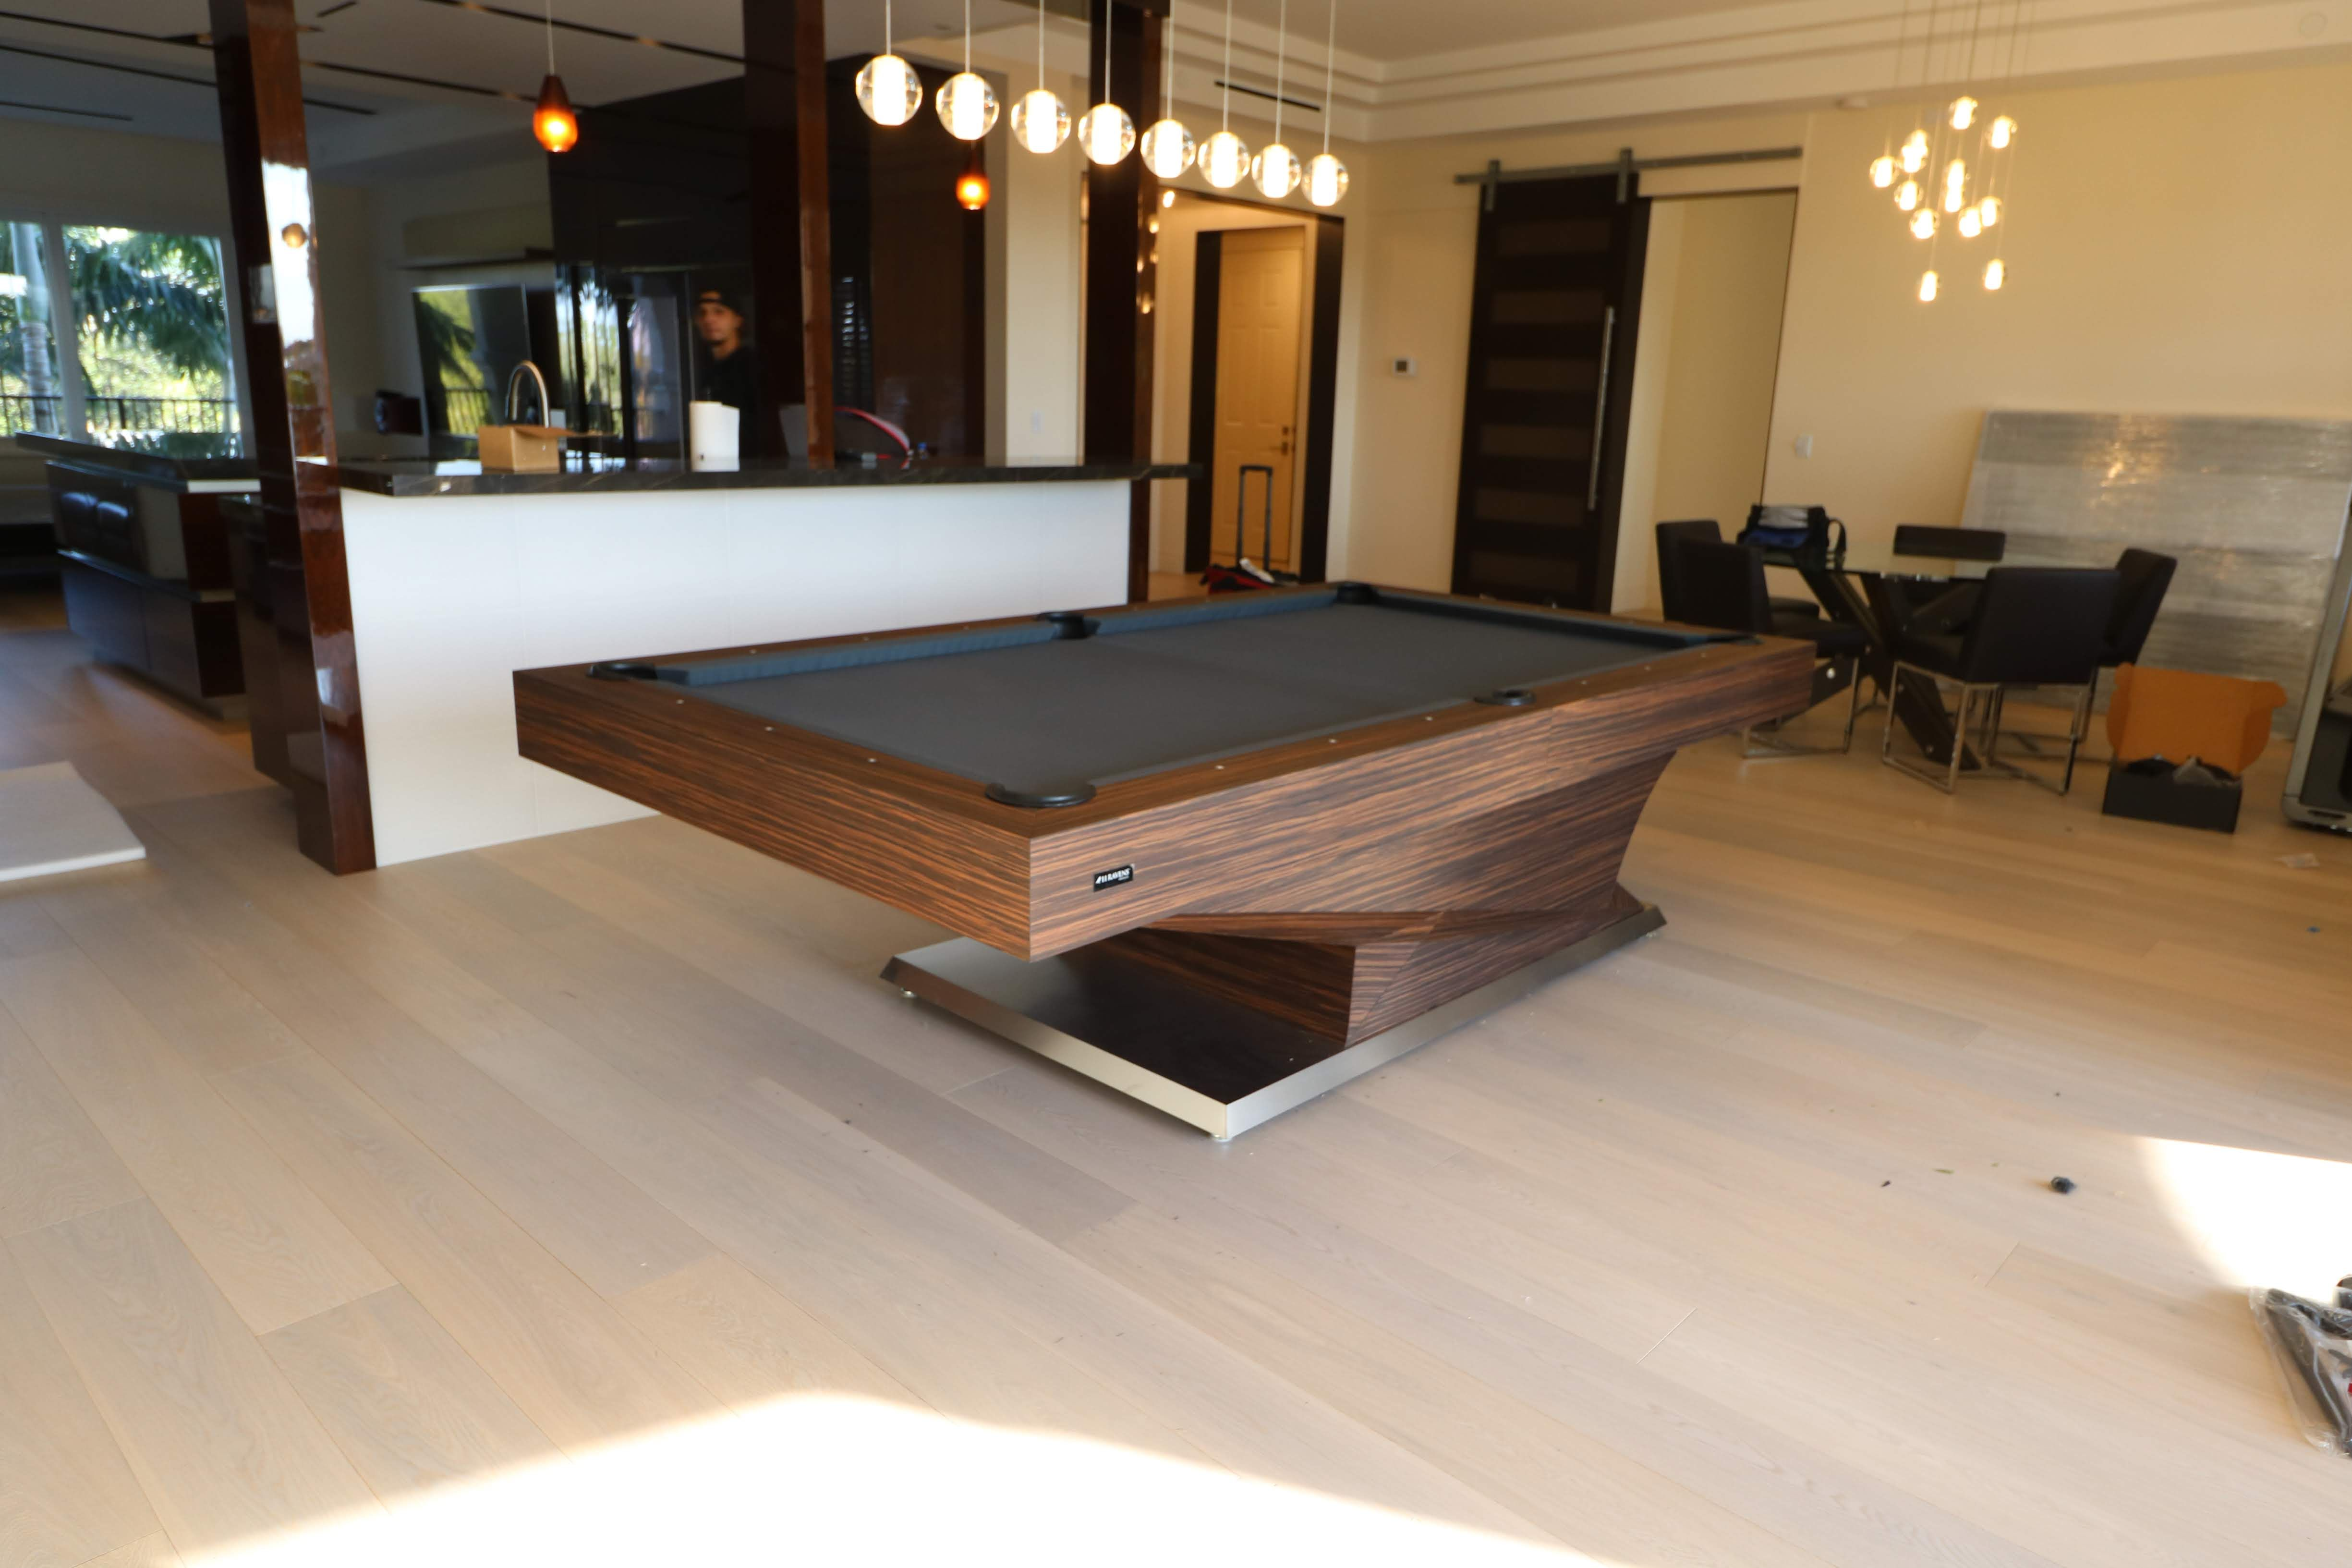 This Model Is The 11 Ravens Namesake Thus The Svelte Lines And Superlative Form Of This Design Envelopes Y Modern Pool Table Modern Pools Custom Pool Tables